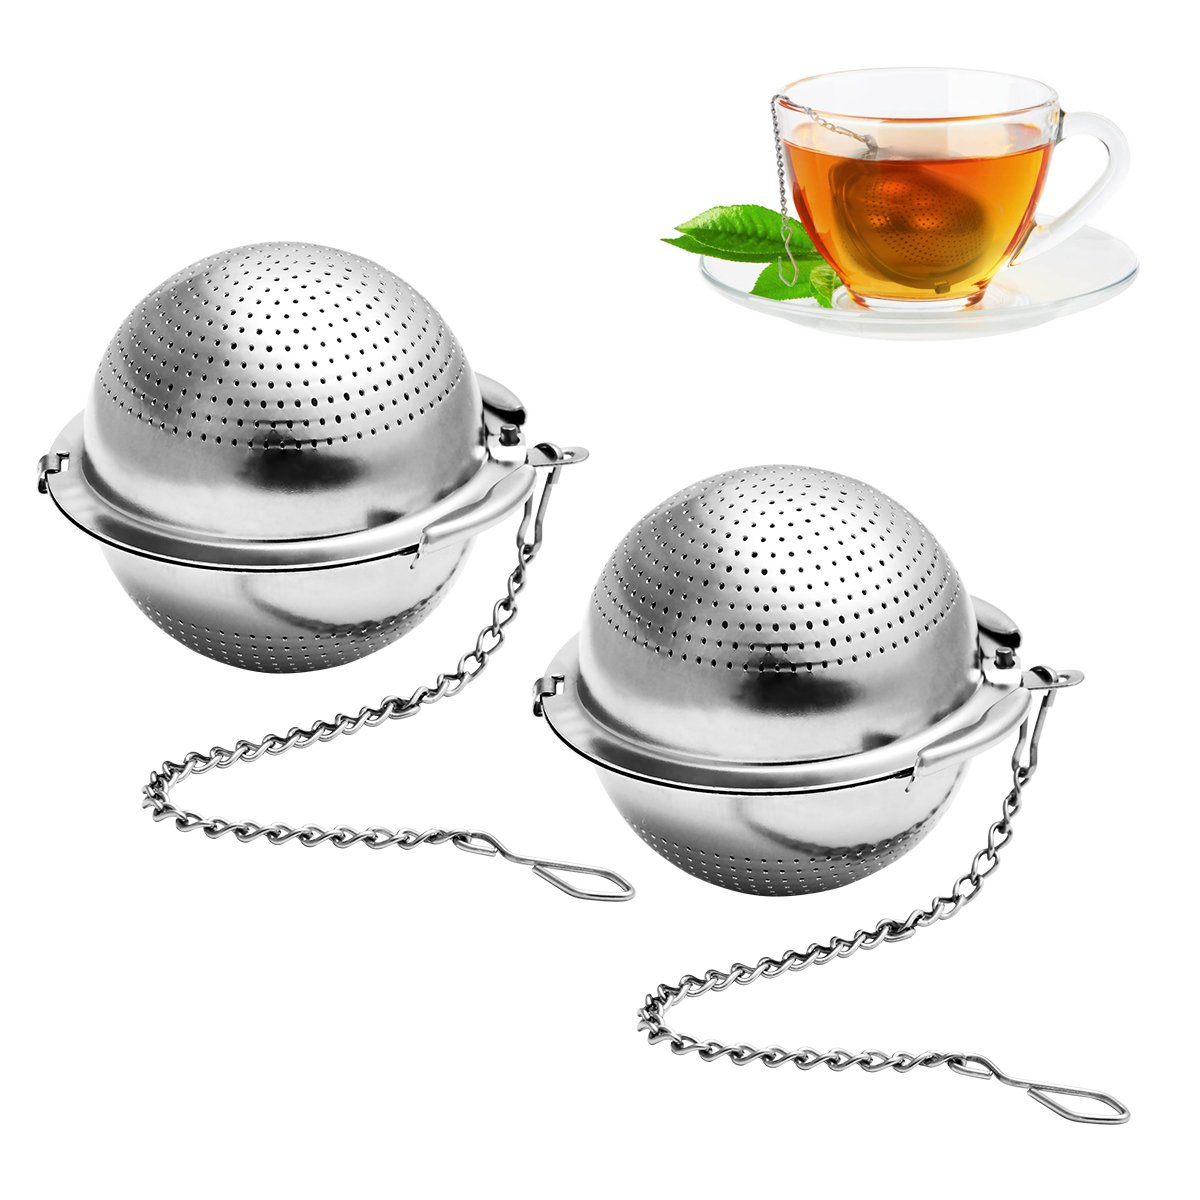 BESTONZON 2 Pack Tea Strainer 2Inch Tea Ball Infuser Ultra Fine 304 Stainless Steel Tea Filter for Loose Leaf Tea and Mulling Spices